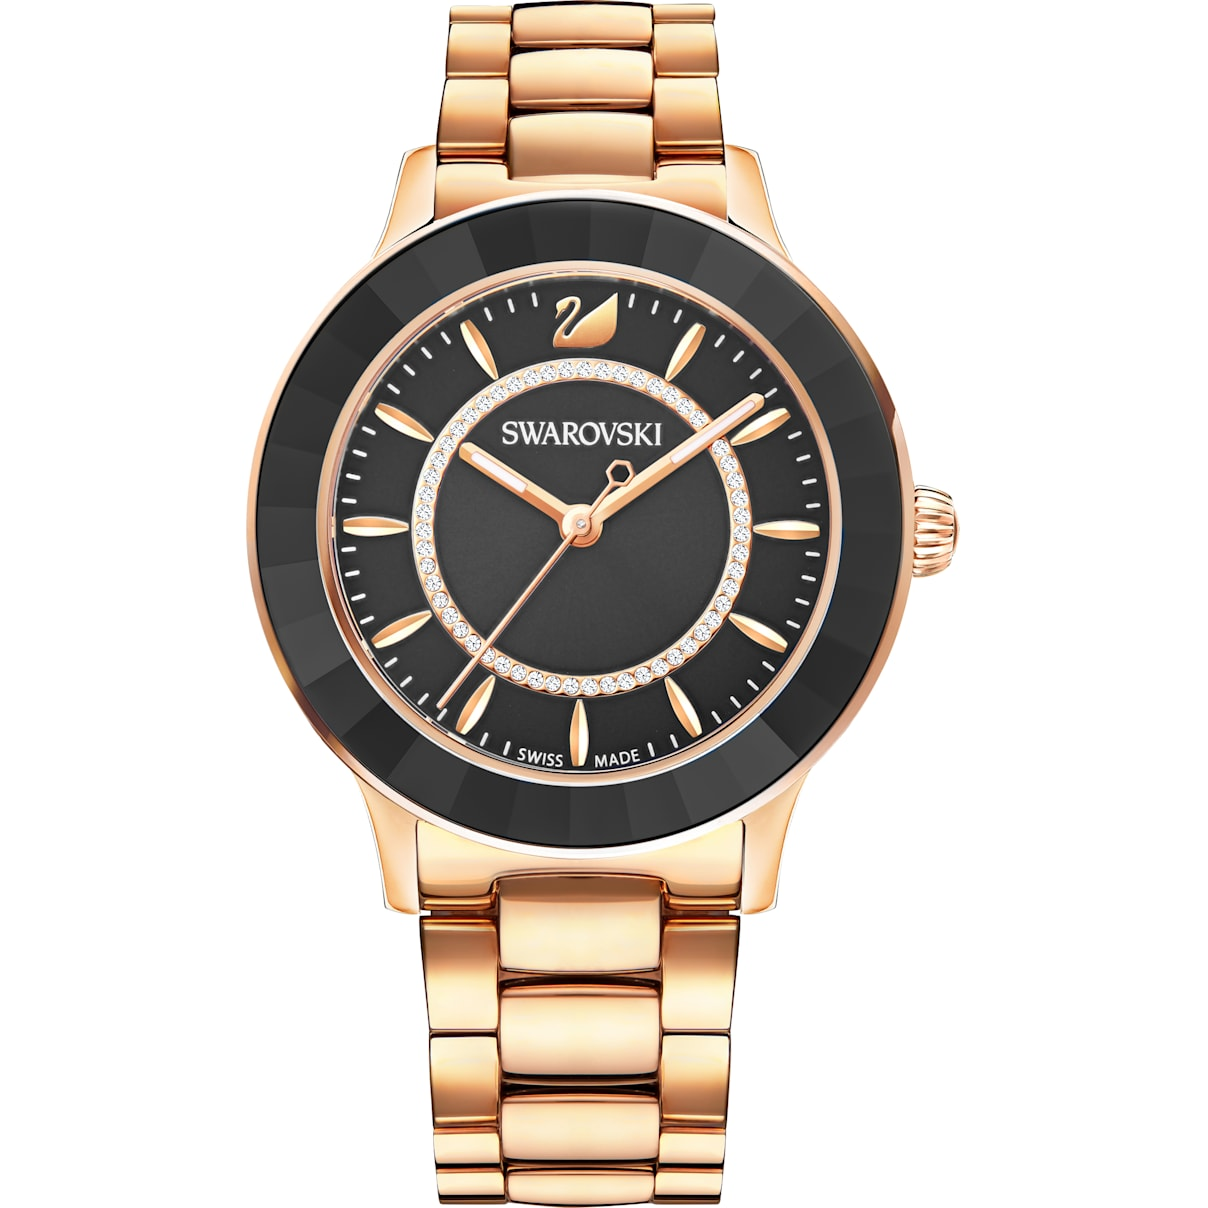 Swarovski Octea Lux Watch, Metal bracelet, Black, Rose-gold tone PVD